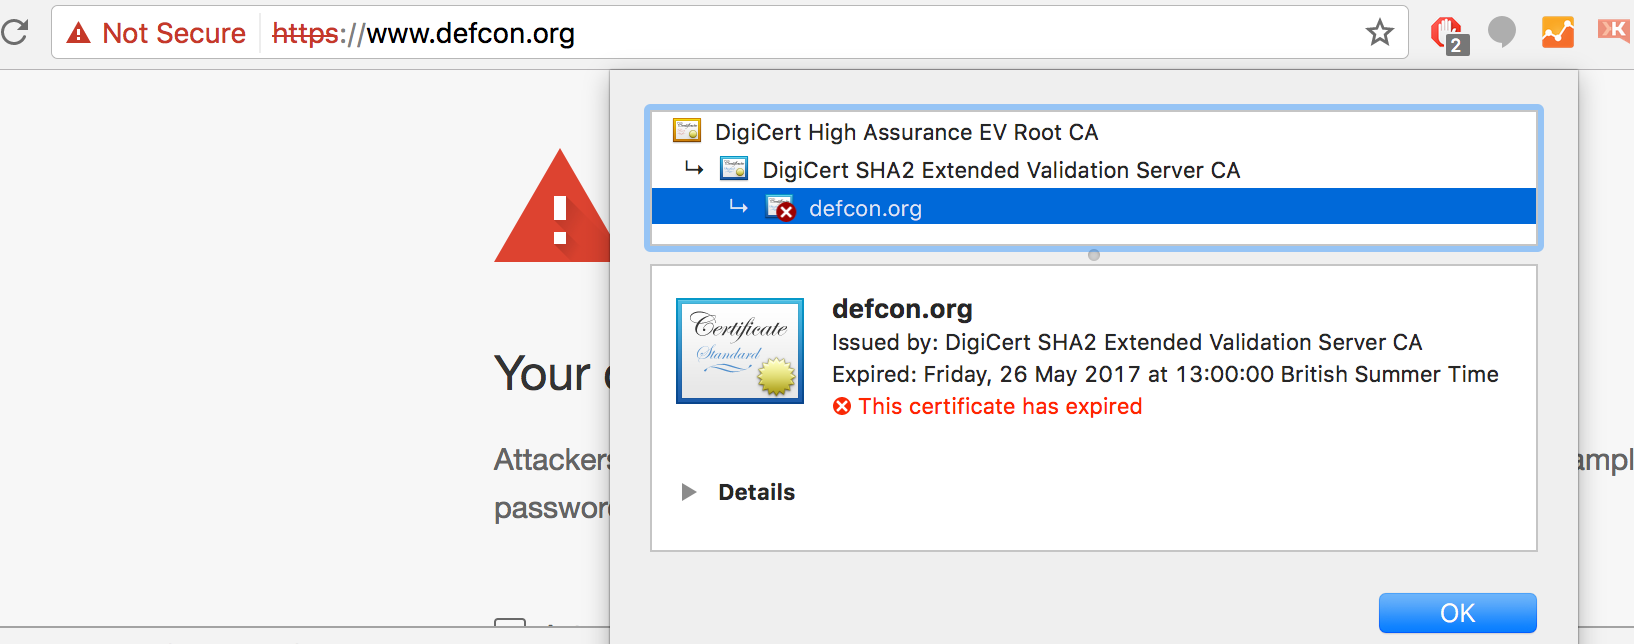 DefCon website down due to expired certificate.